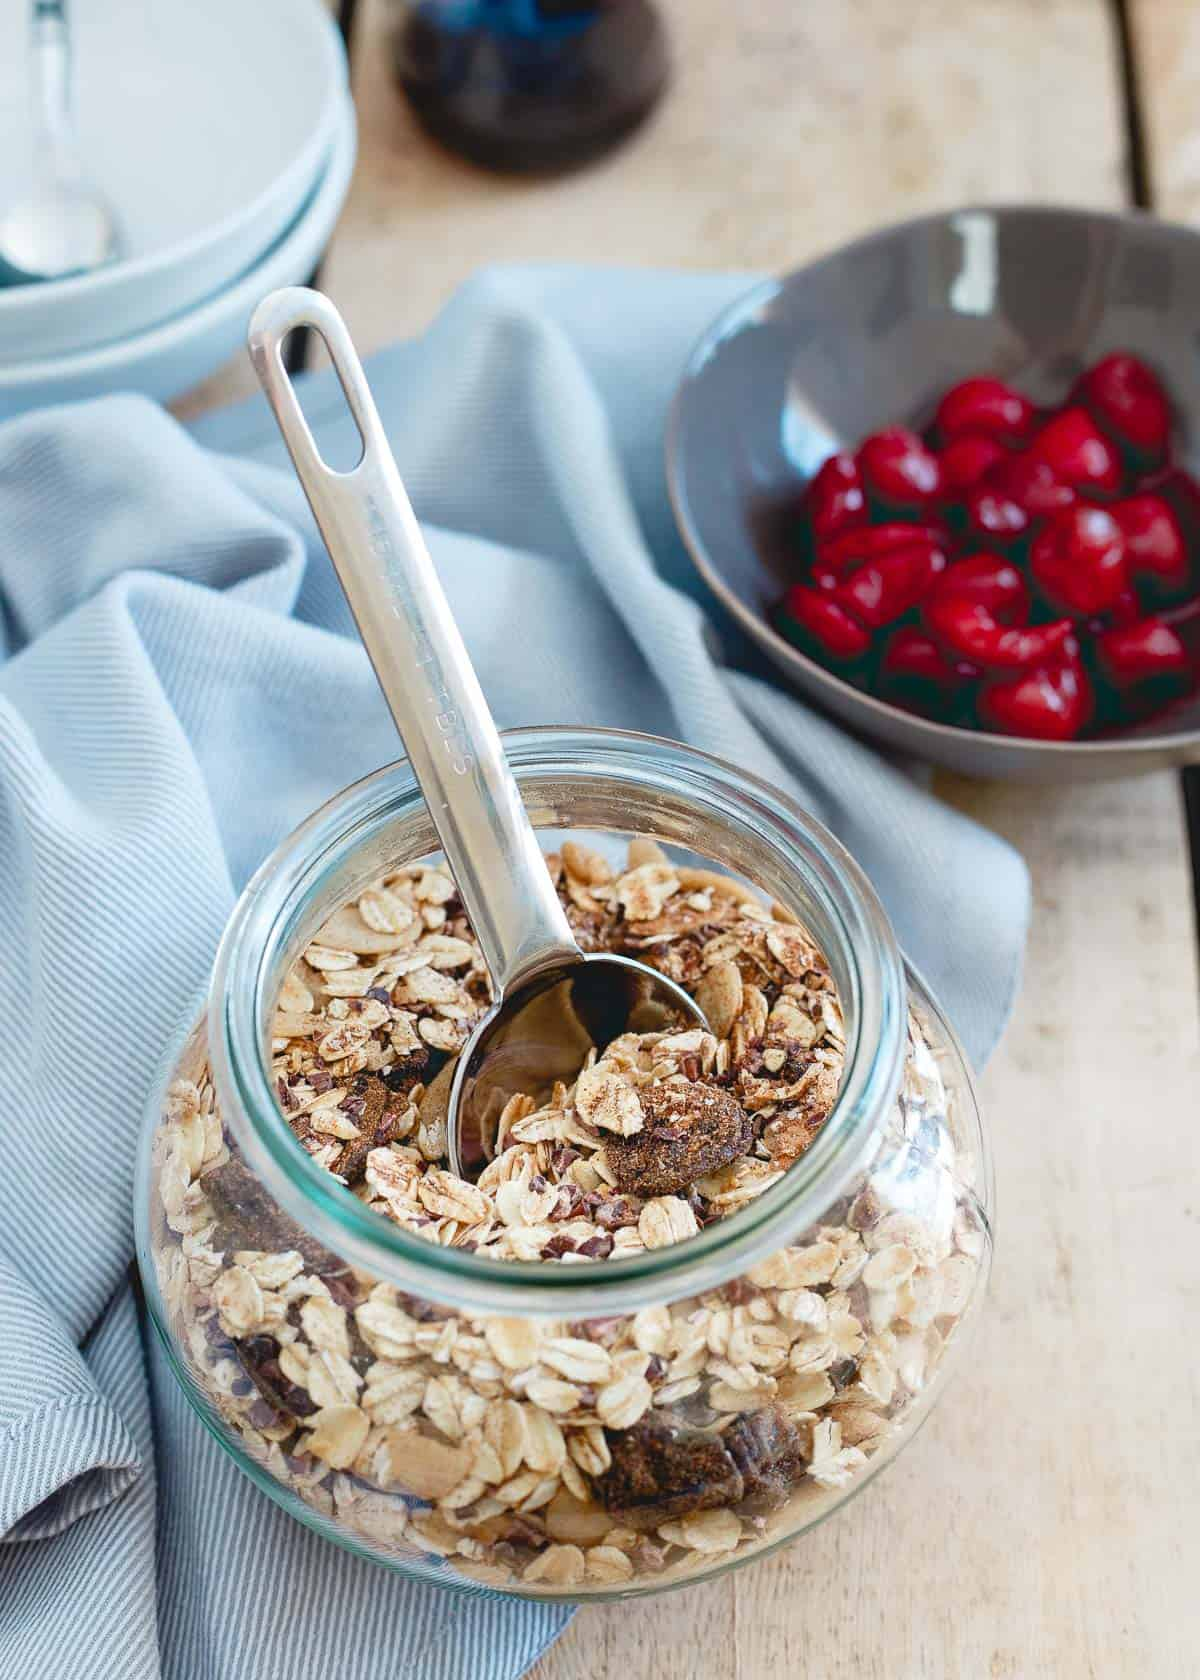 Tart Cherry Ginger Muesli is like a lazy man's oatmeal. All the tasty ingredients, none of the work!